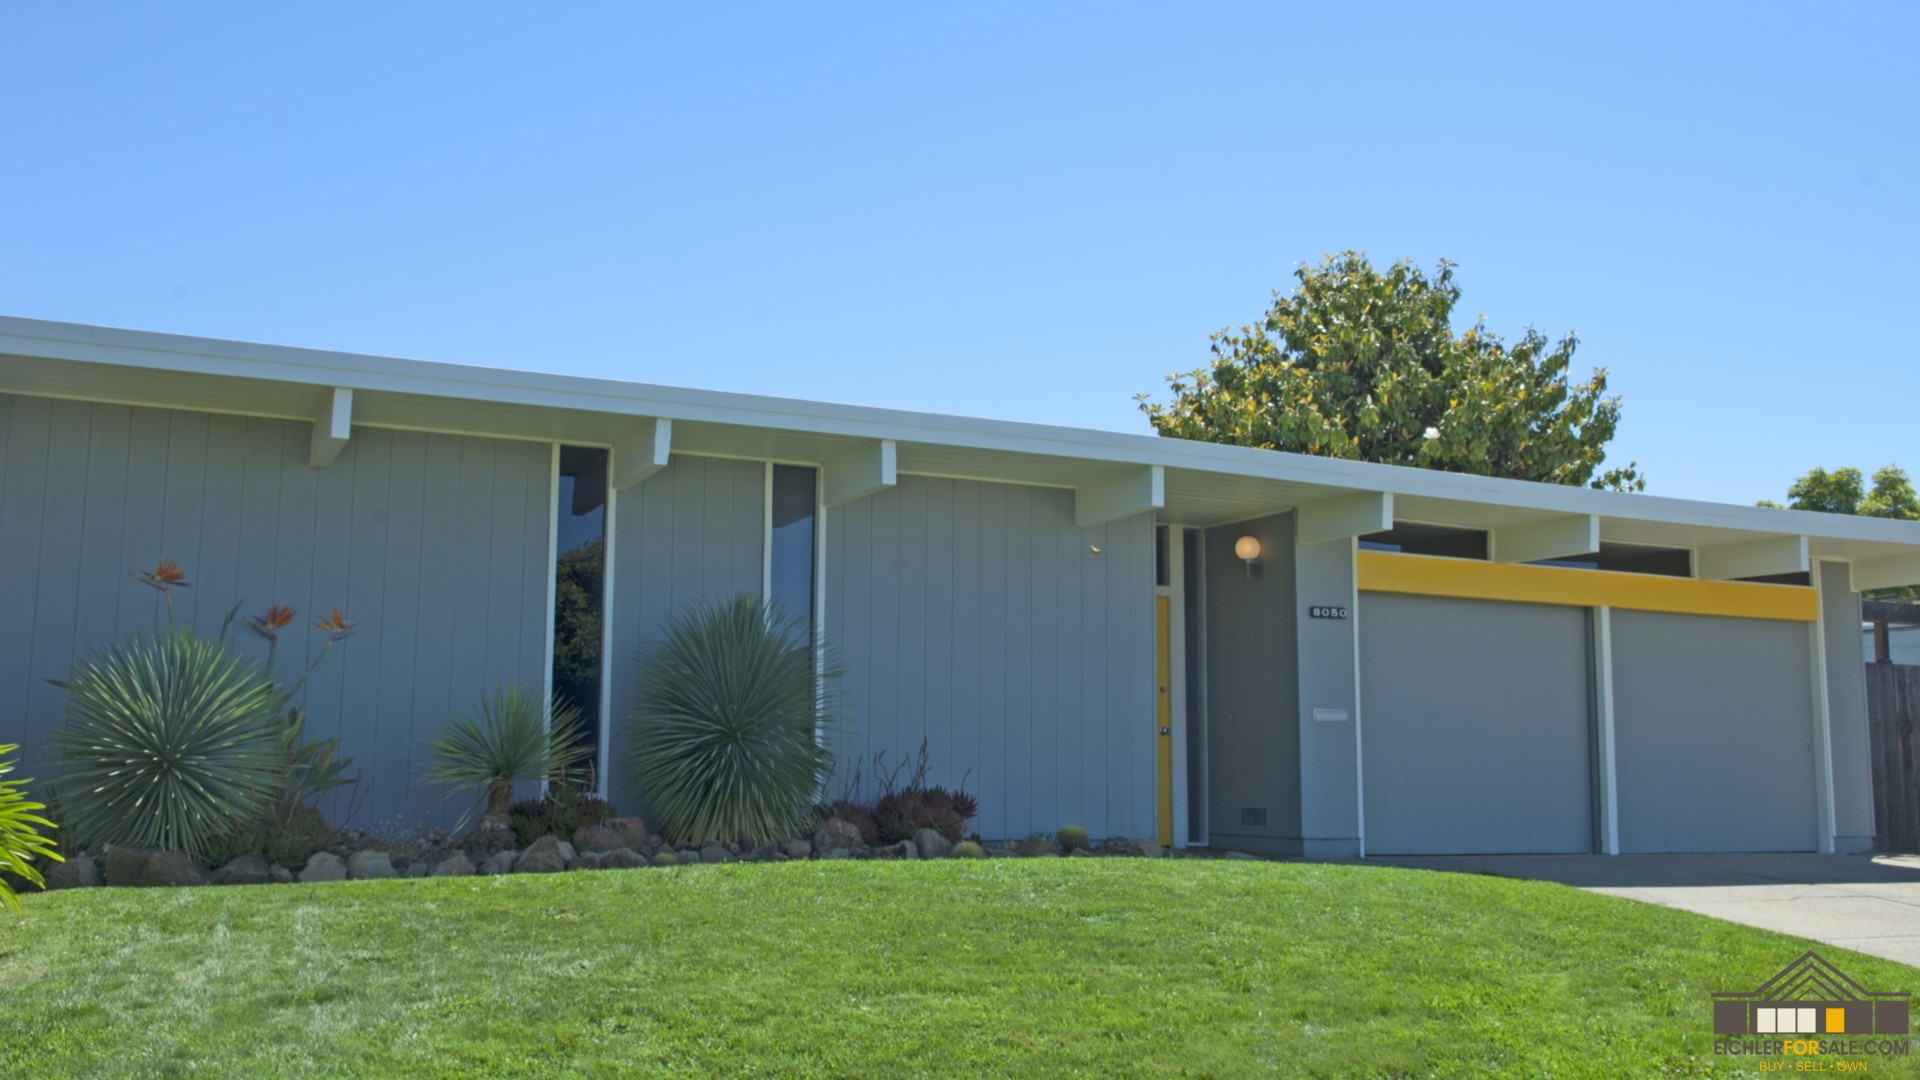 Oakland eichler homes east bay eichlers sequoyah hills Century home builders